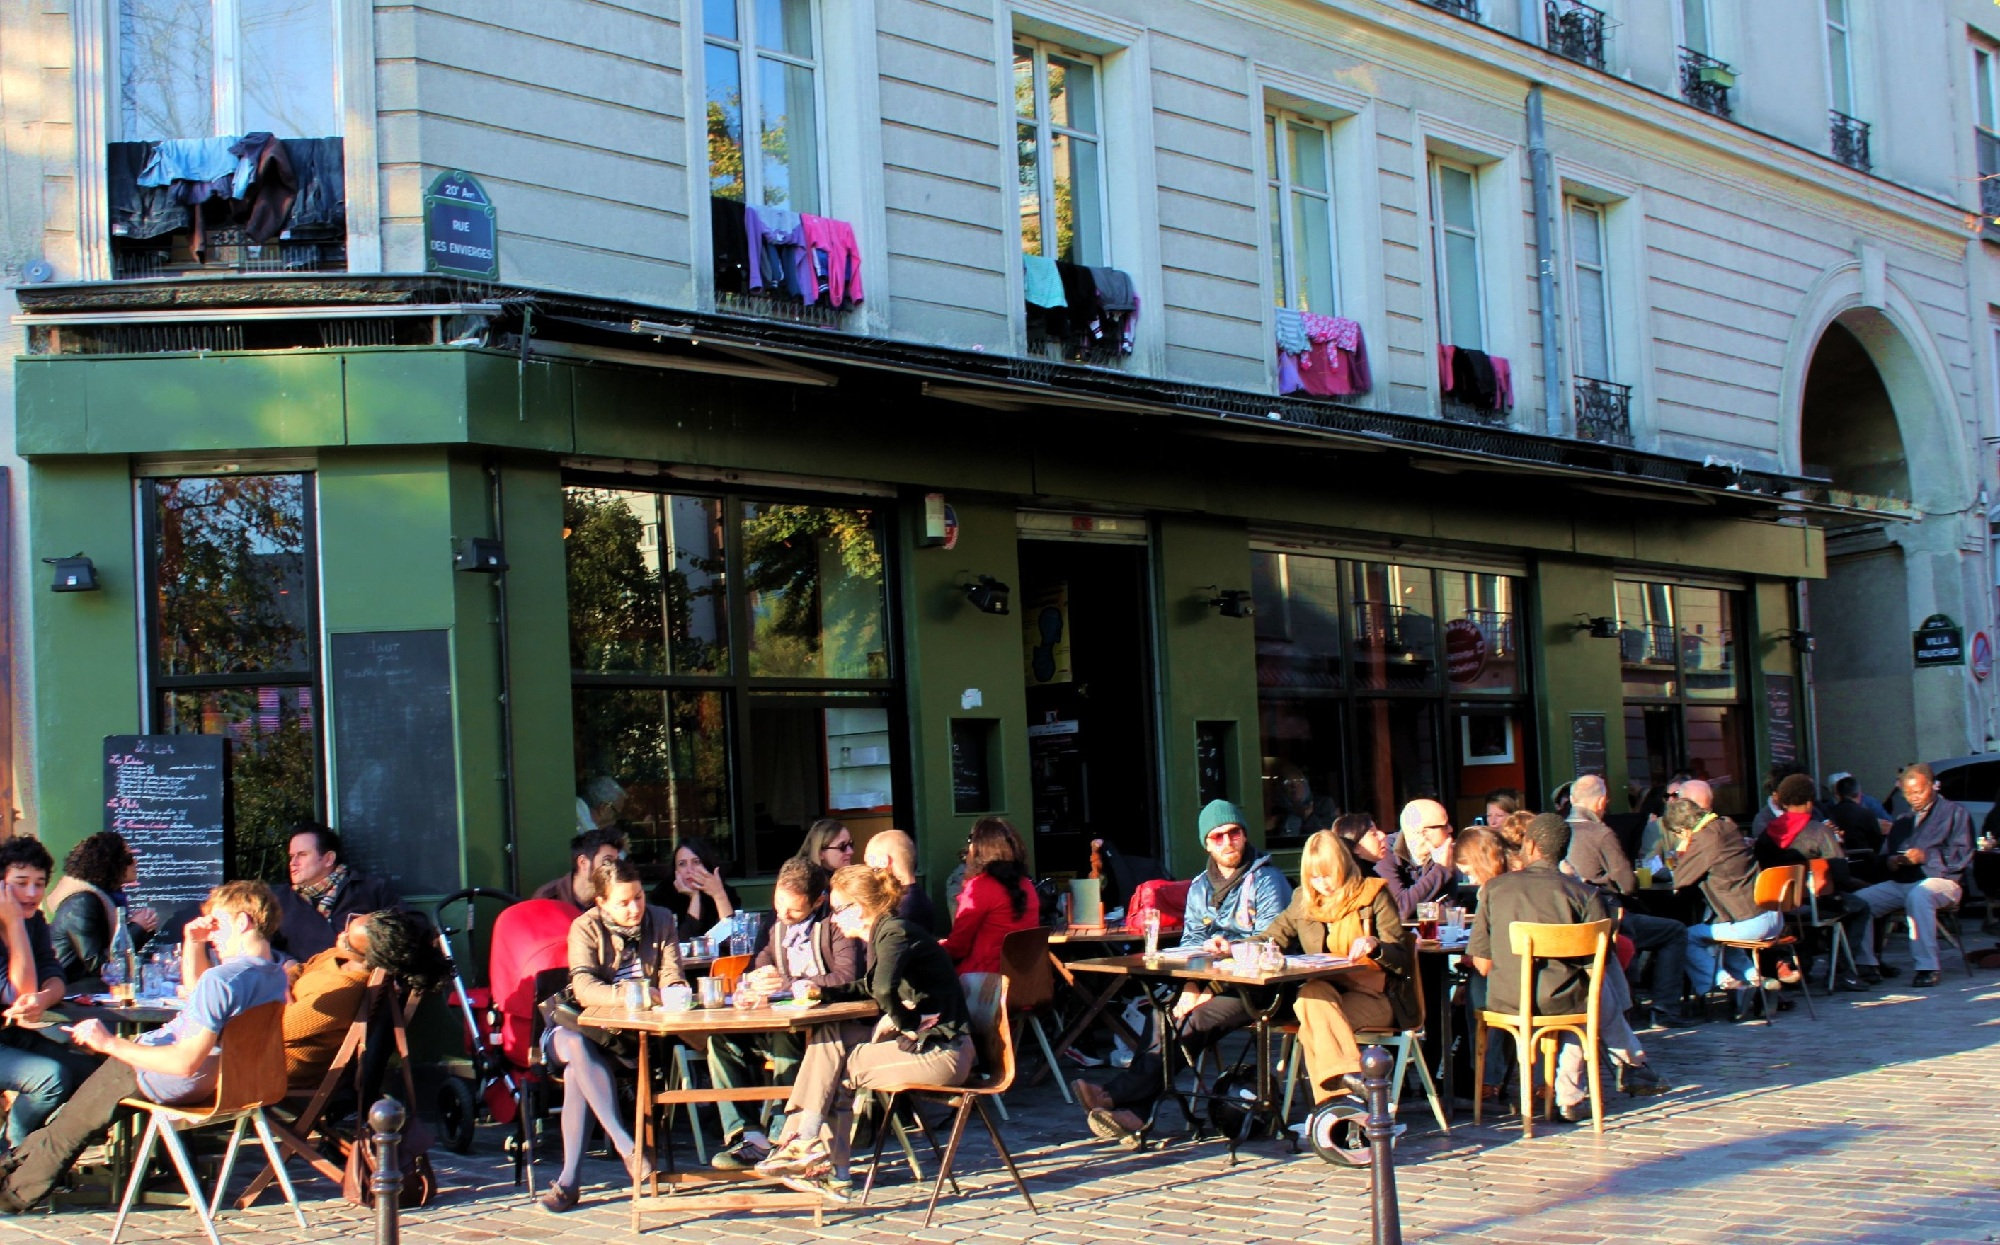 Terrasse Café Les Bars Alternatifs Time Out Paris